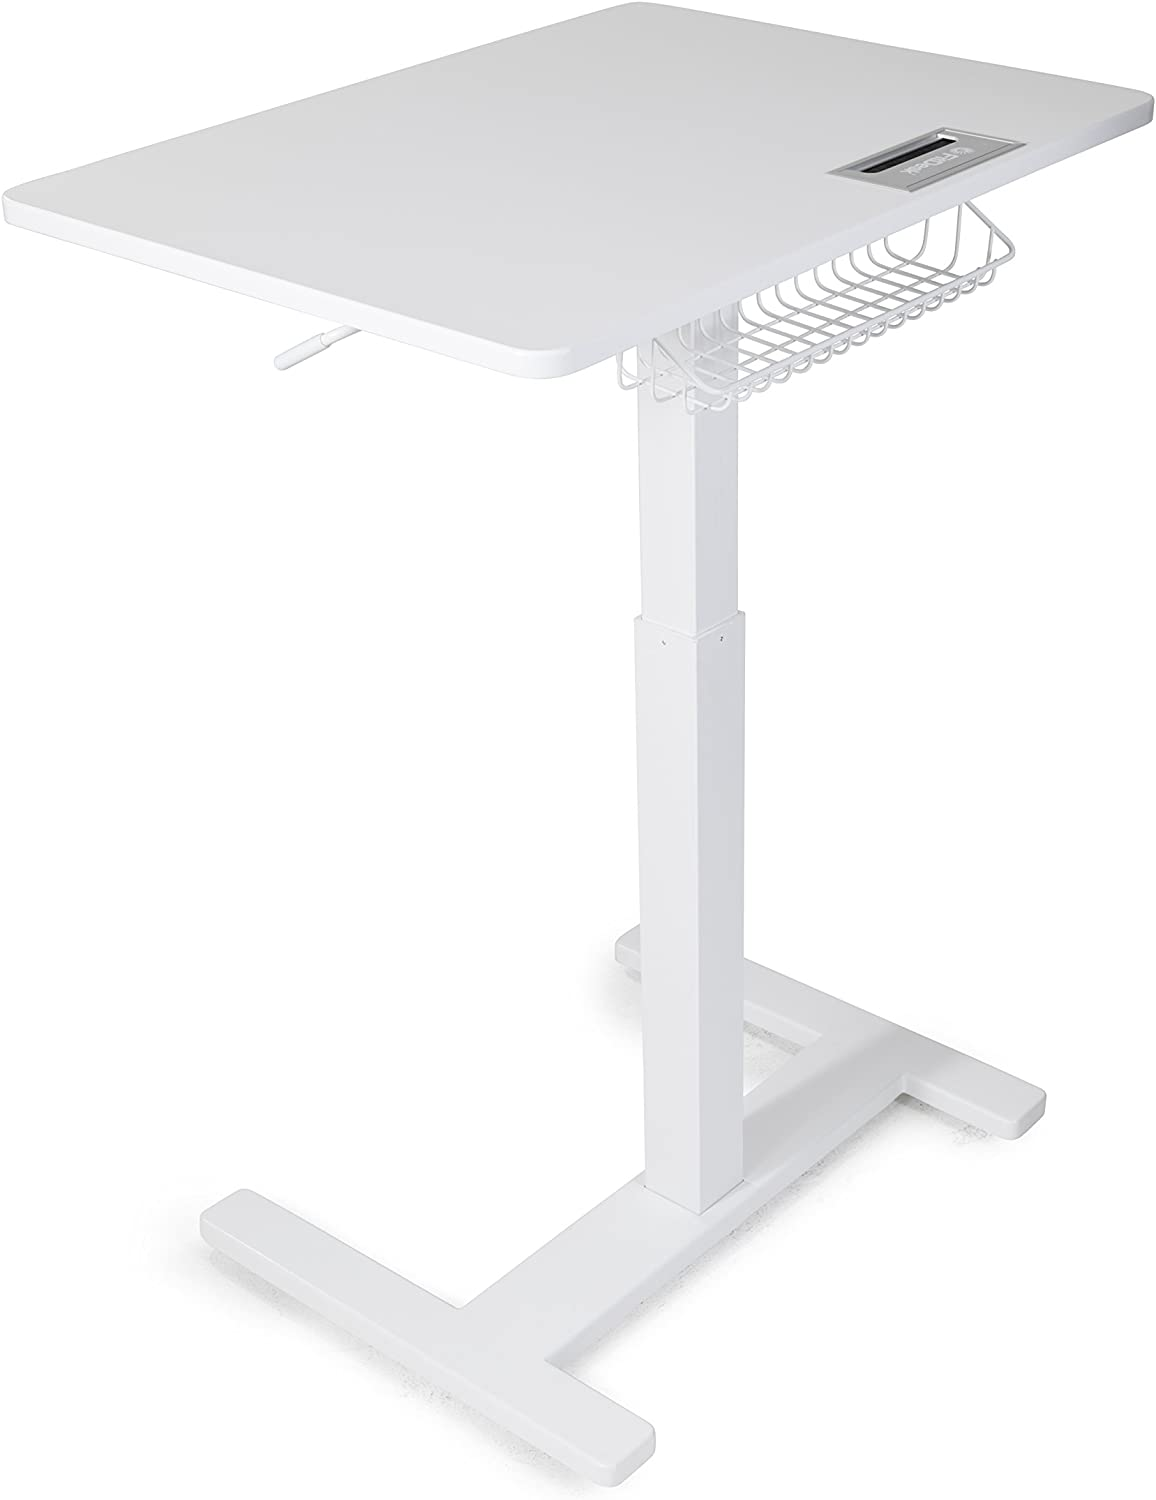 FitDesk Sit-to-Stand Desk, White